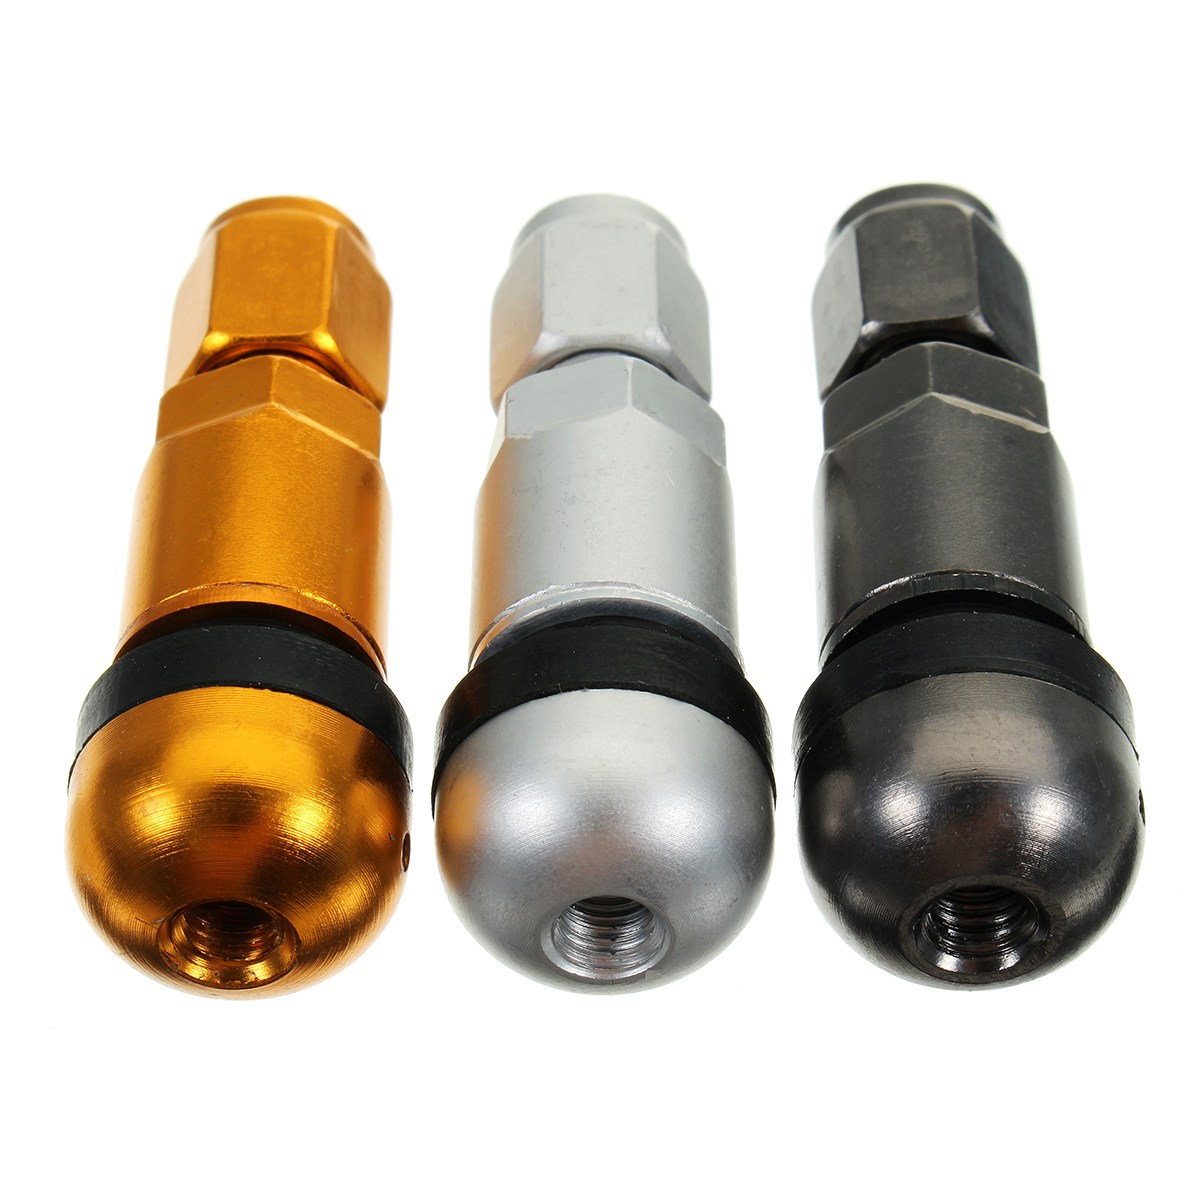 4pcs/set Car Universal Tubeless Tyre Valve Stem Caps Motorcycle Wheel Tire Air Valve Stem Aluminum Metal